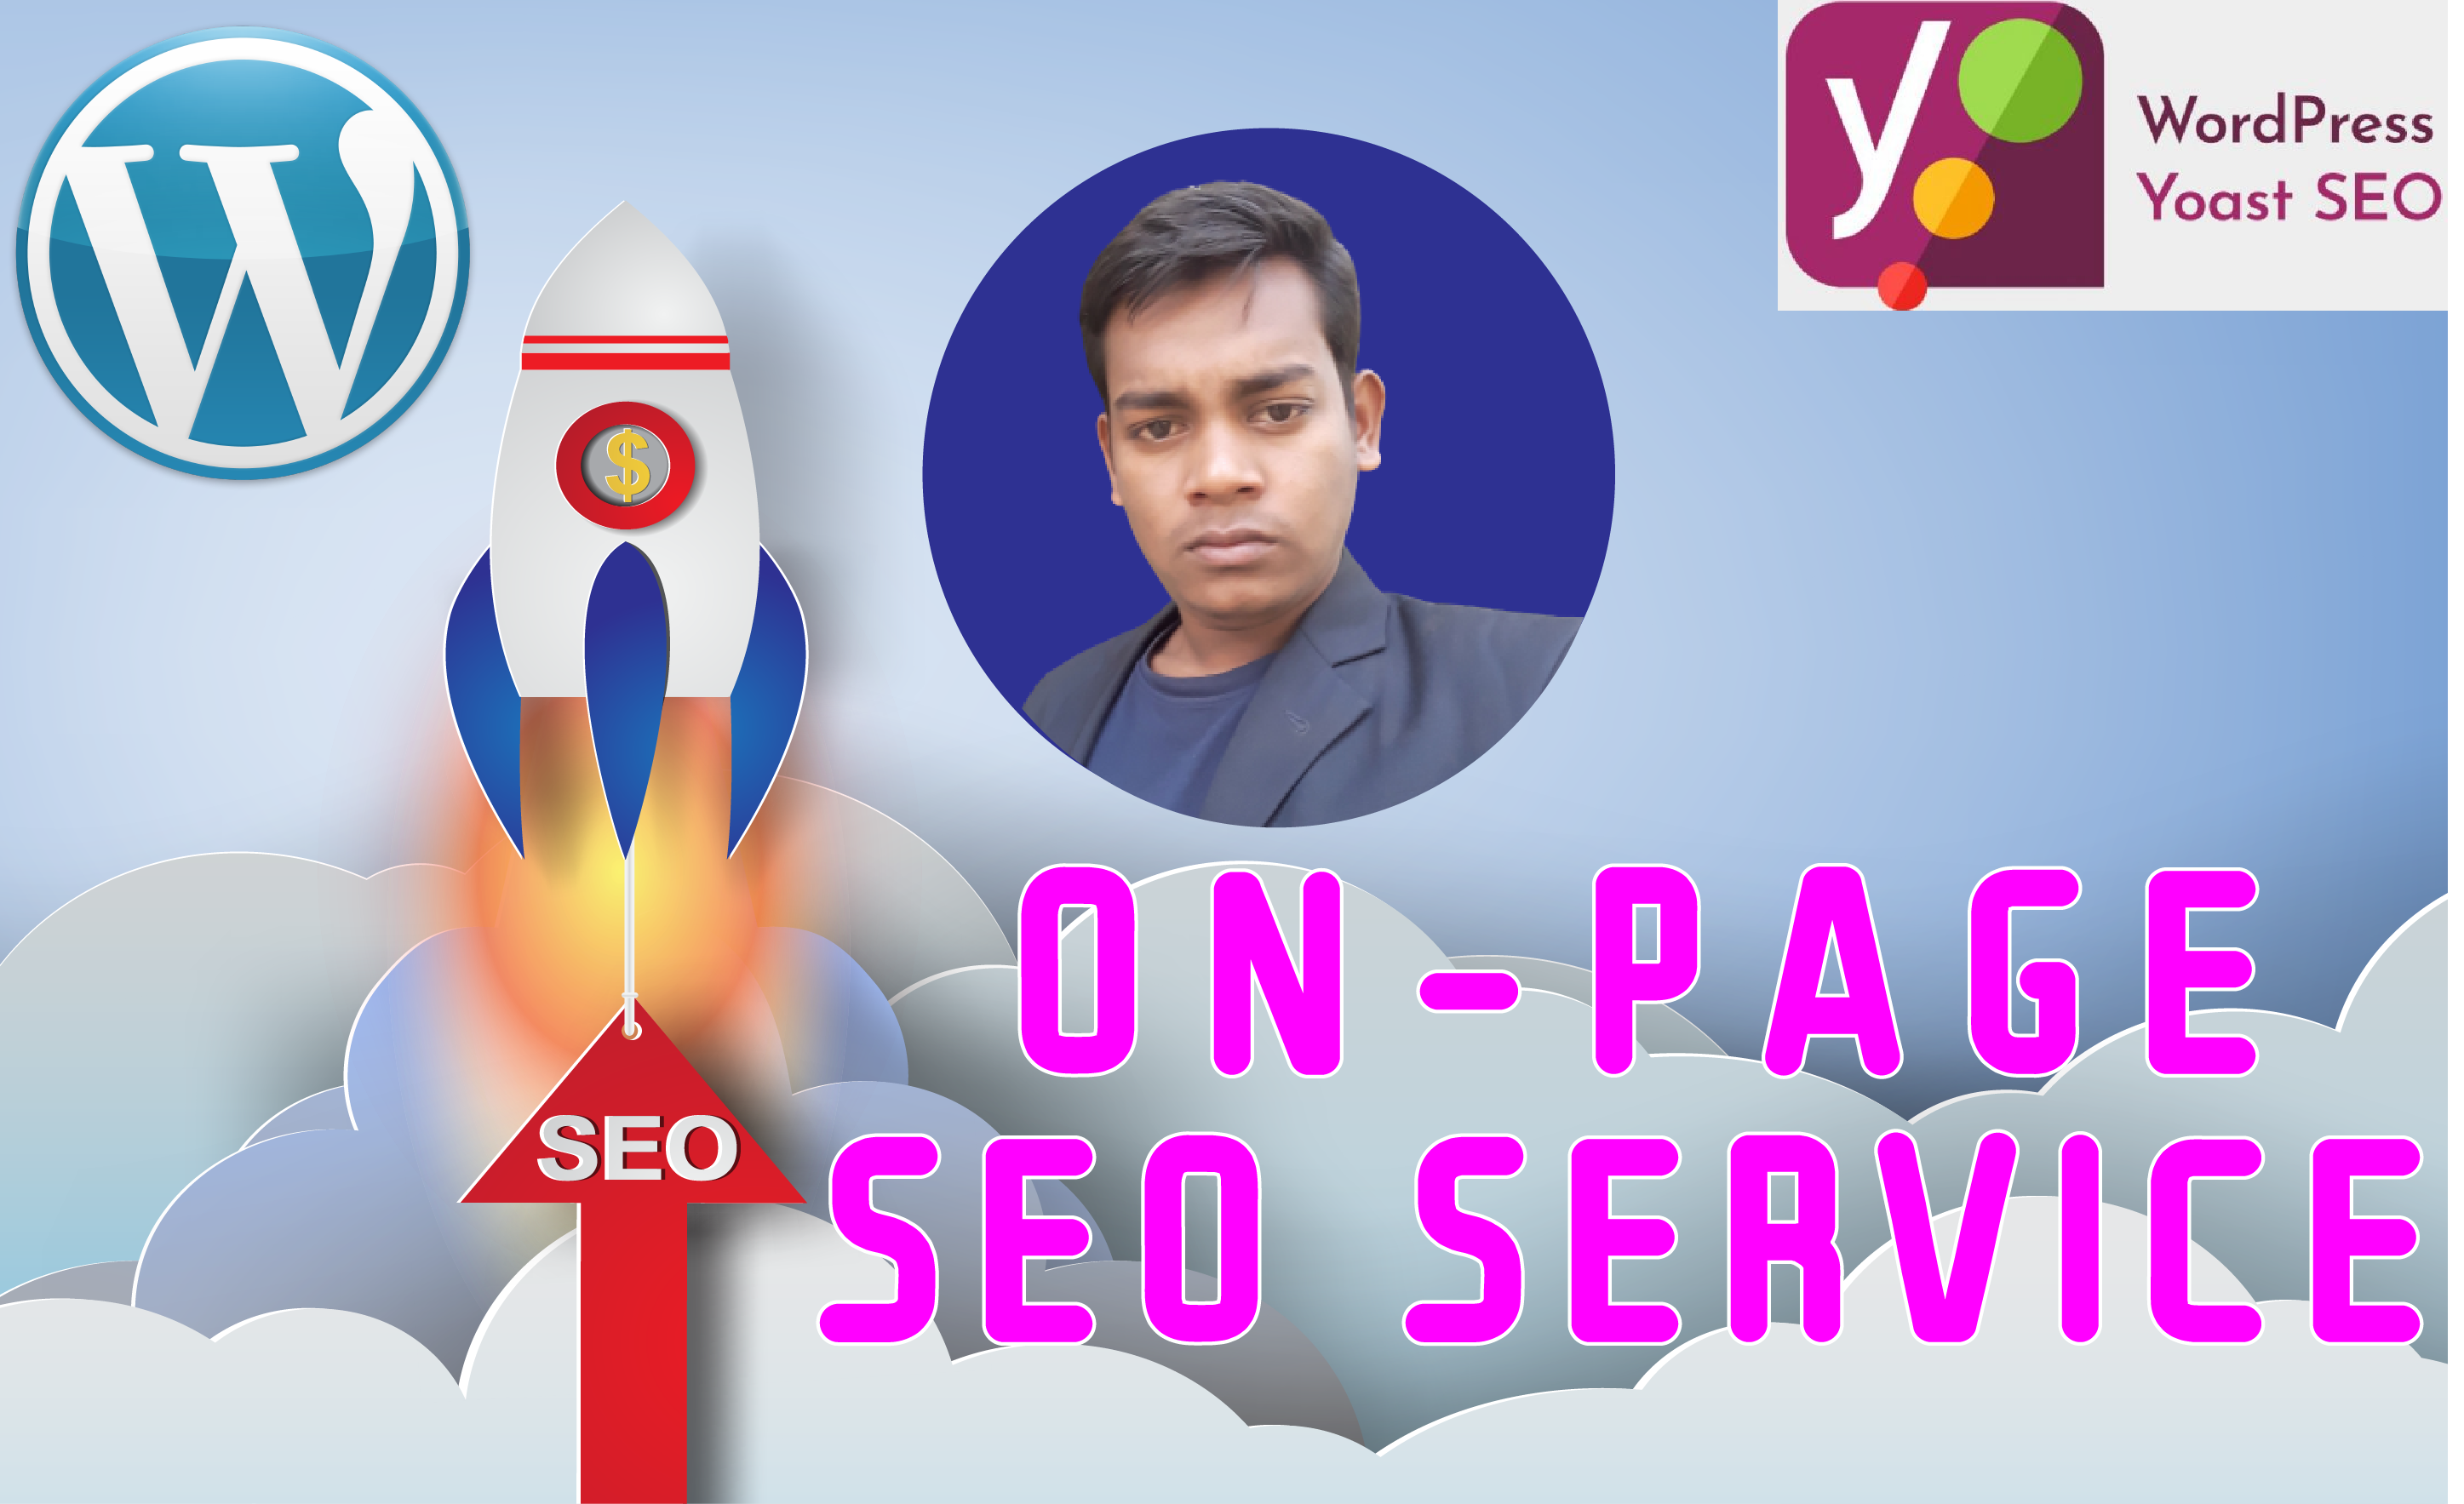 I will provide you ON-page SEO service to do rank your website as an expert SEO just 2 days